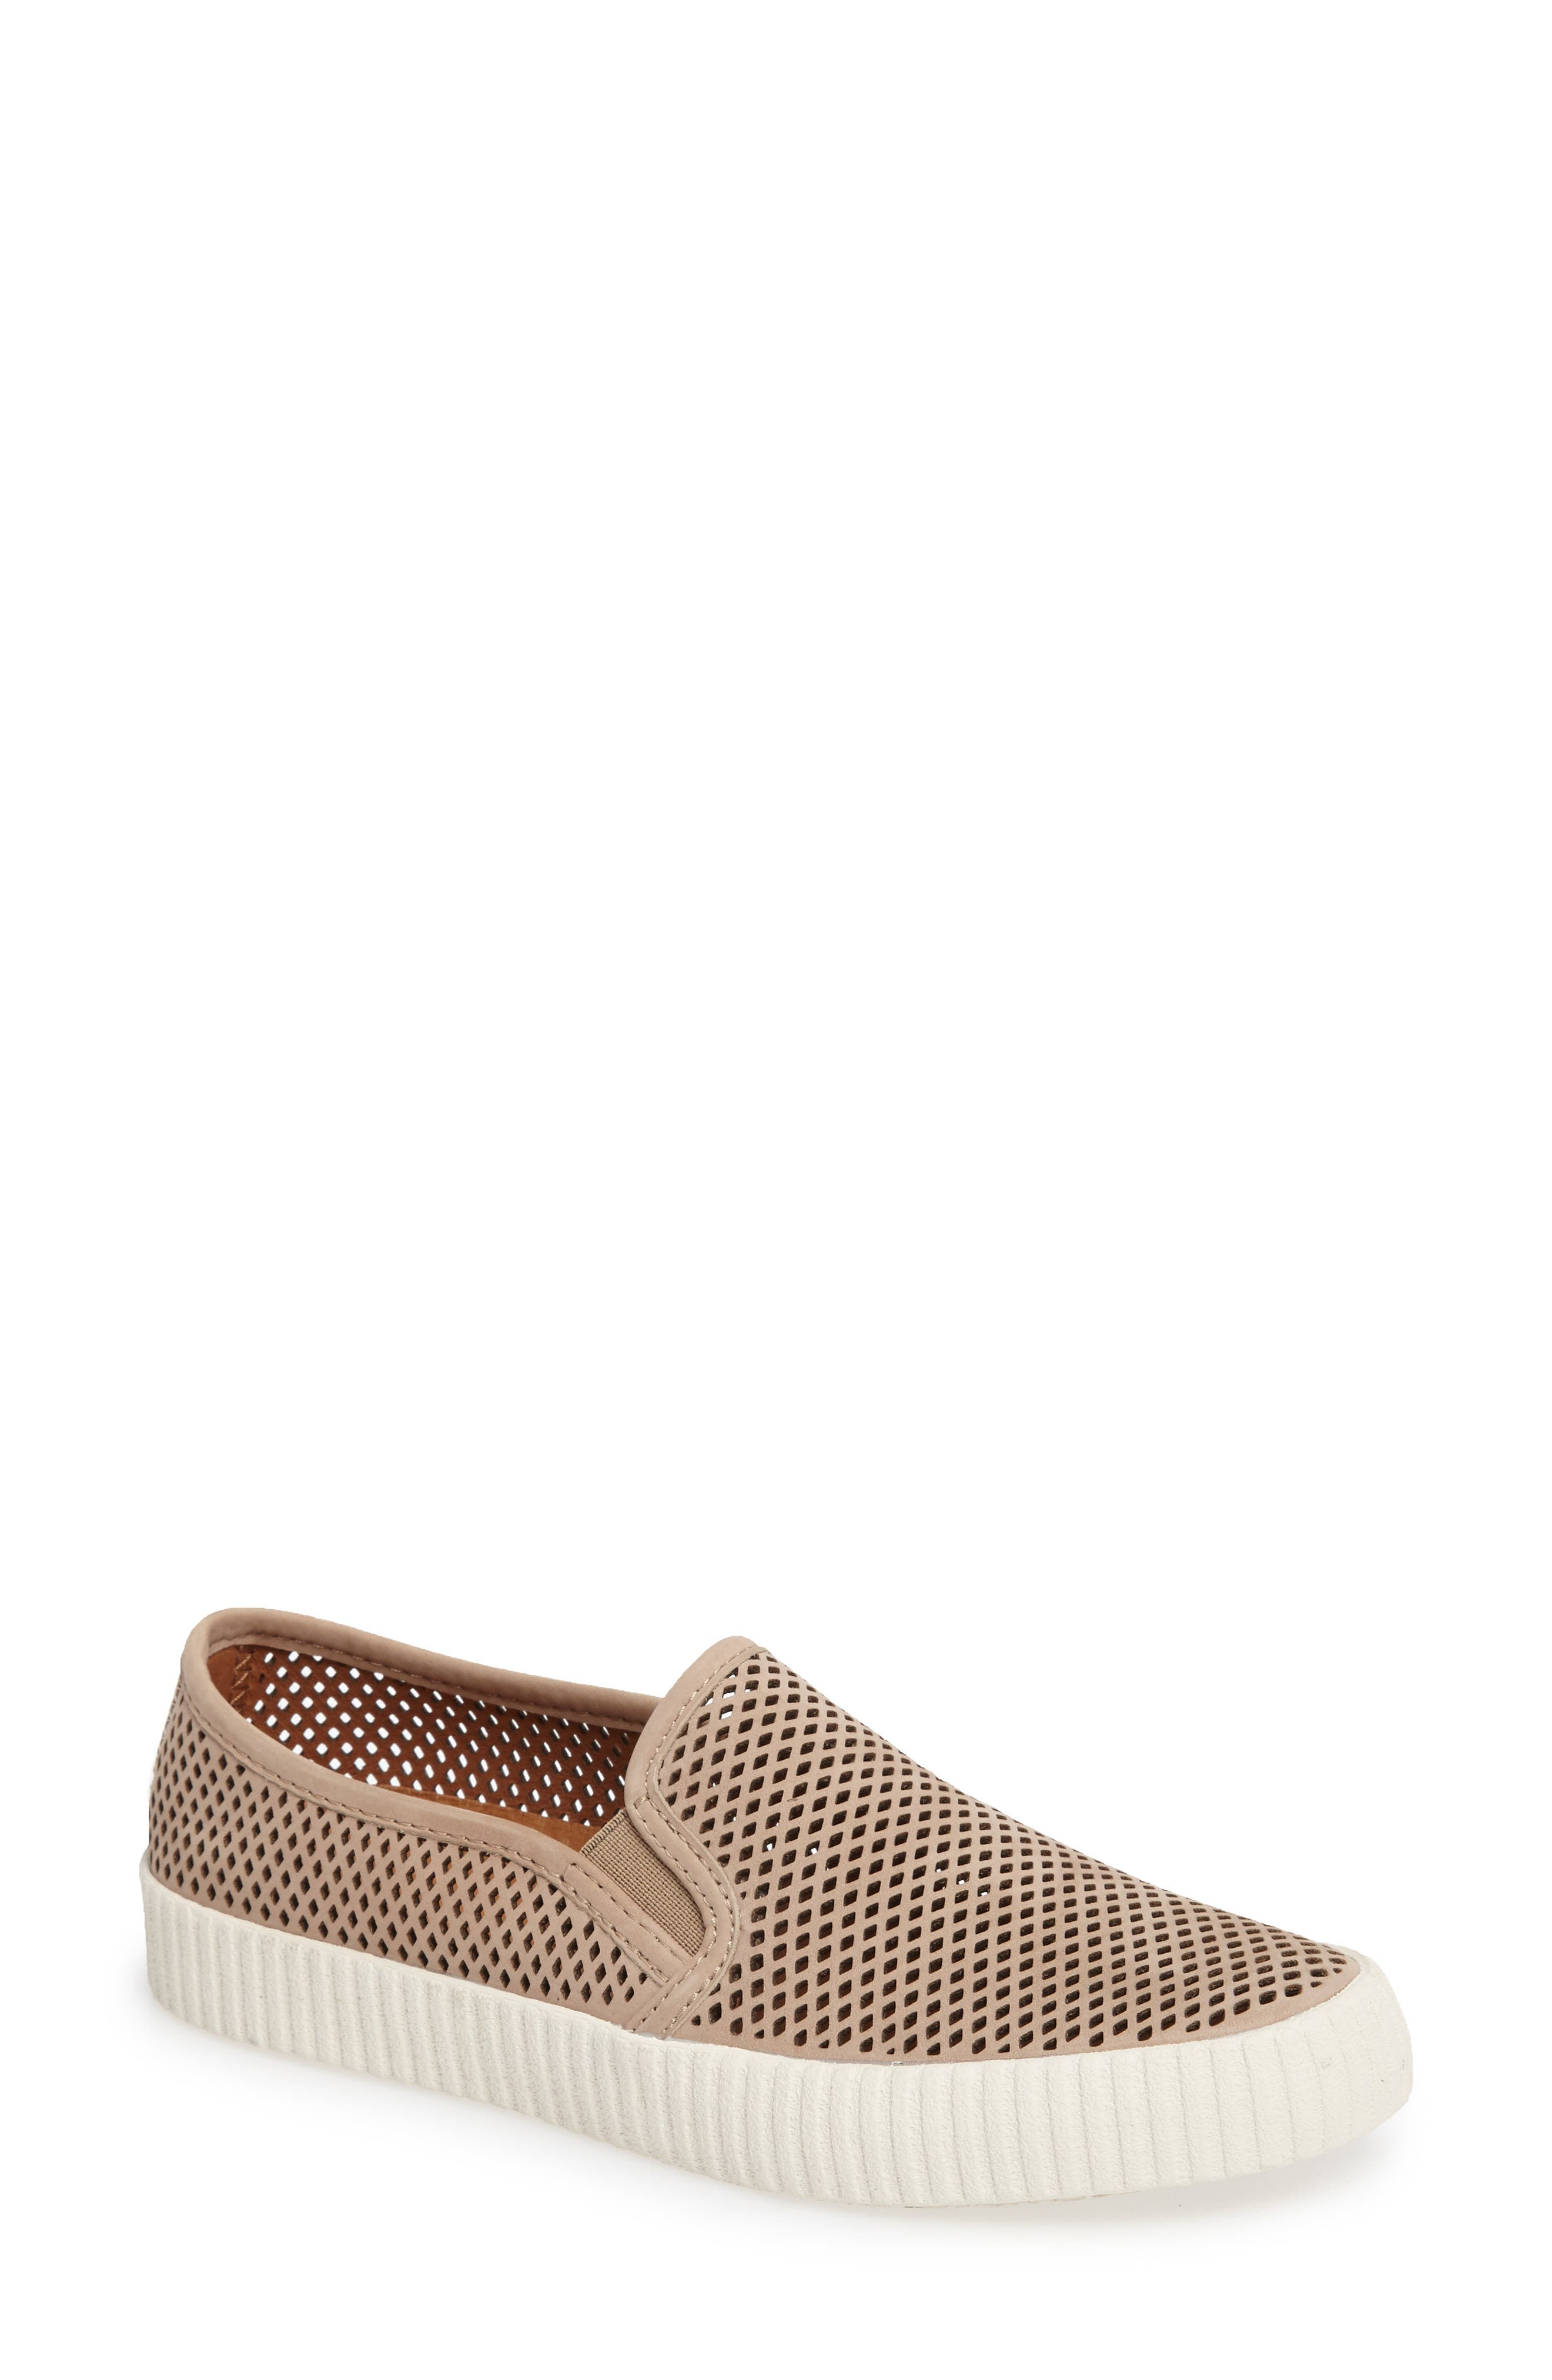 Main Image - Frye Camille Perforated Slip-On Sneaker (Women)